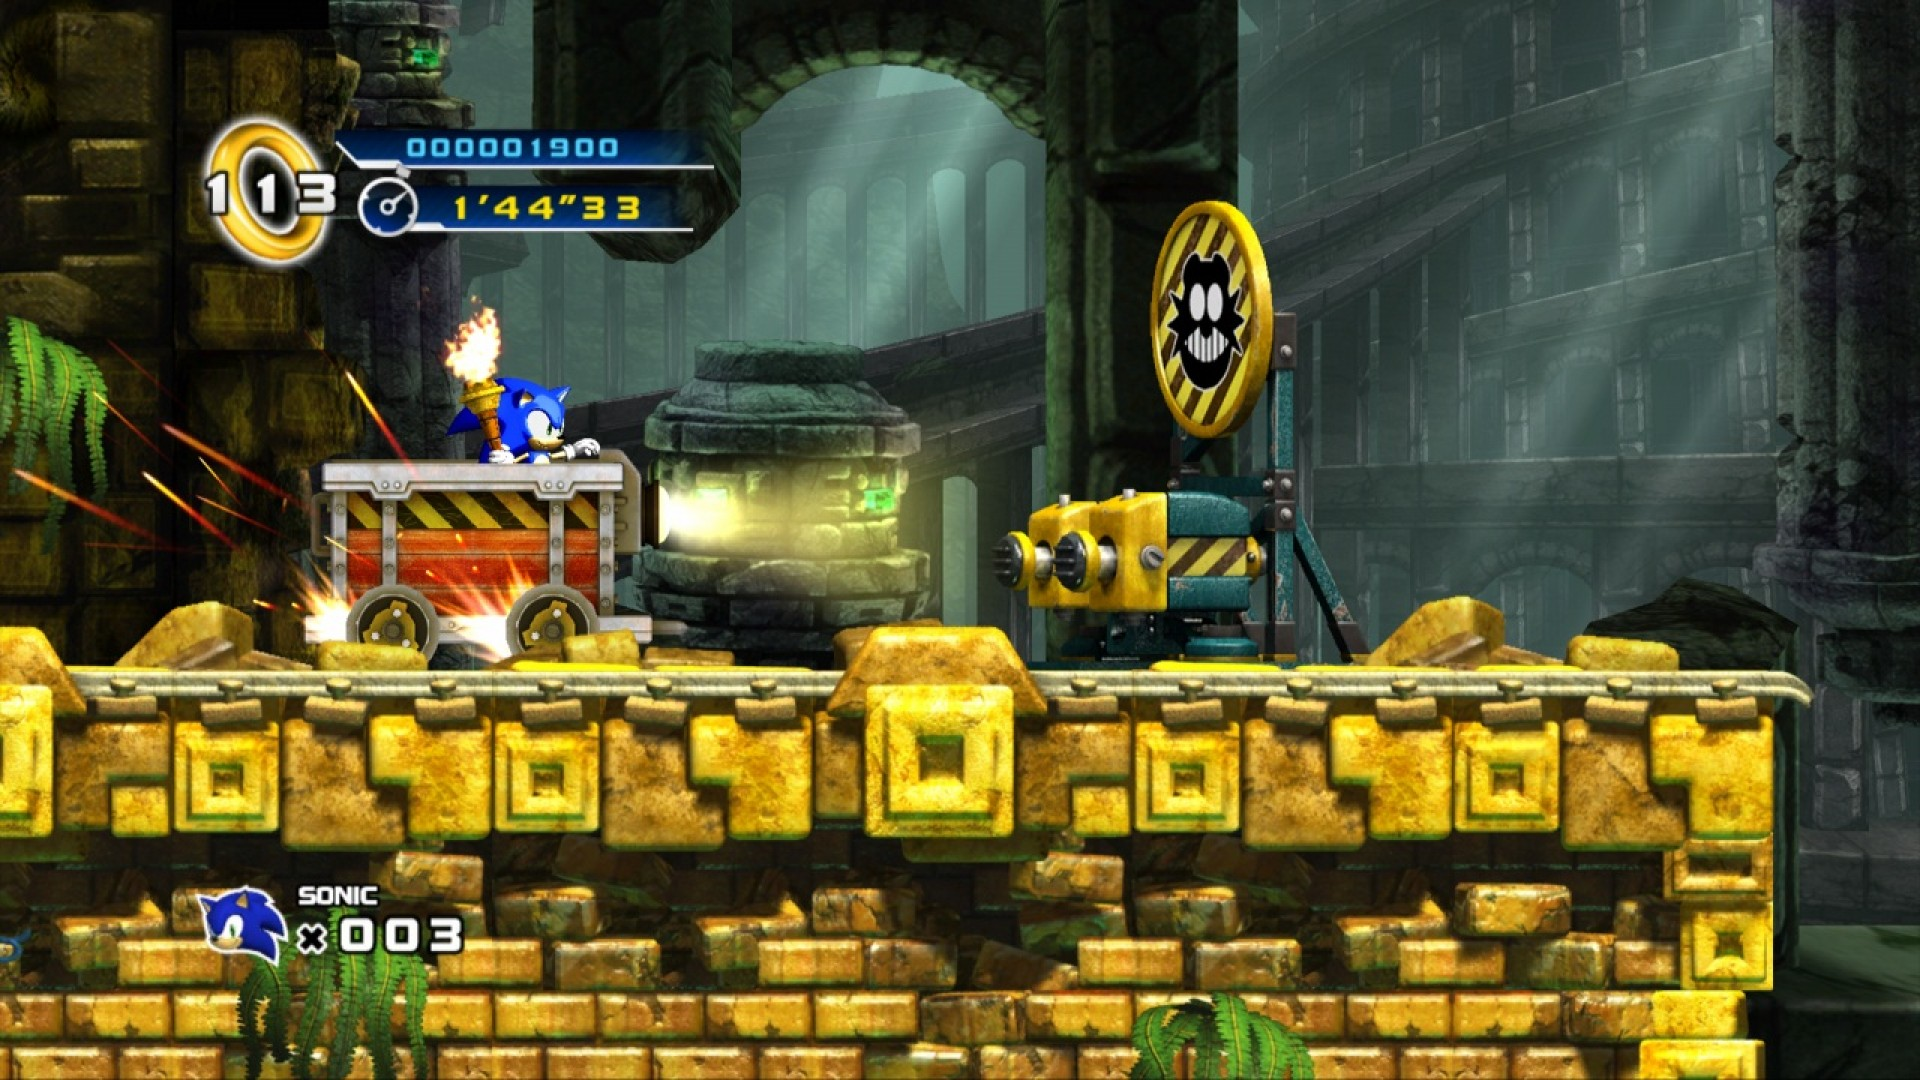 Sonic the Hedgehog 4 - Episode I screenshot